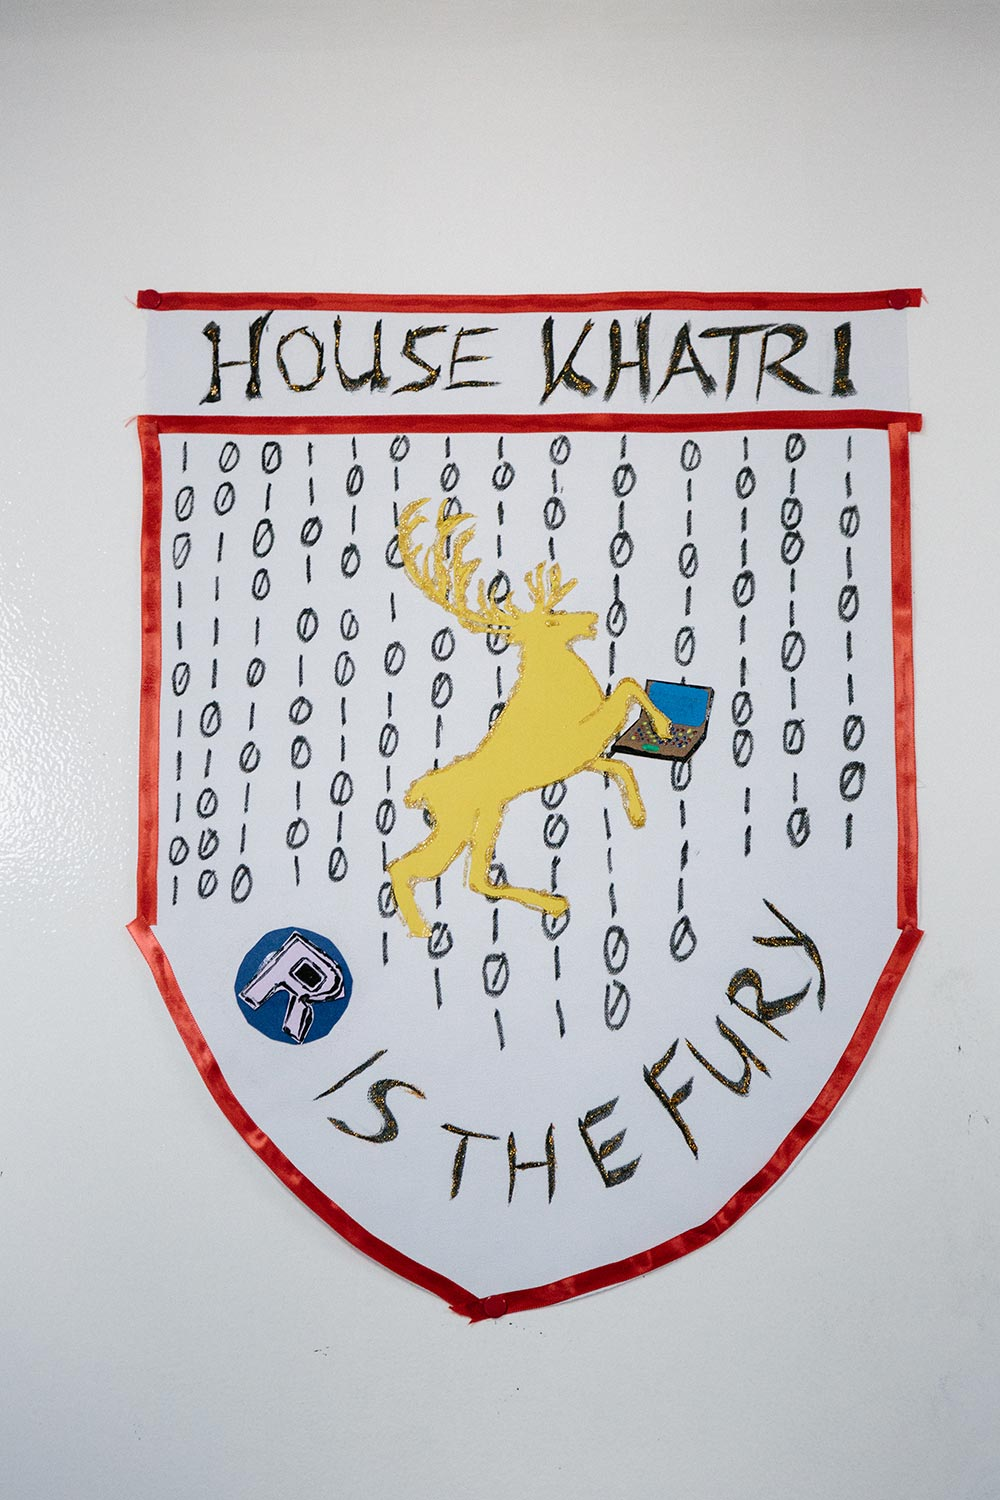 A humorous decoration in Khatri's laboratory teases his group's emphasis on genetic analysis.